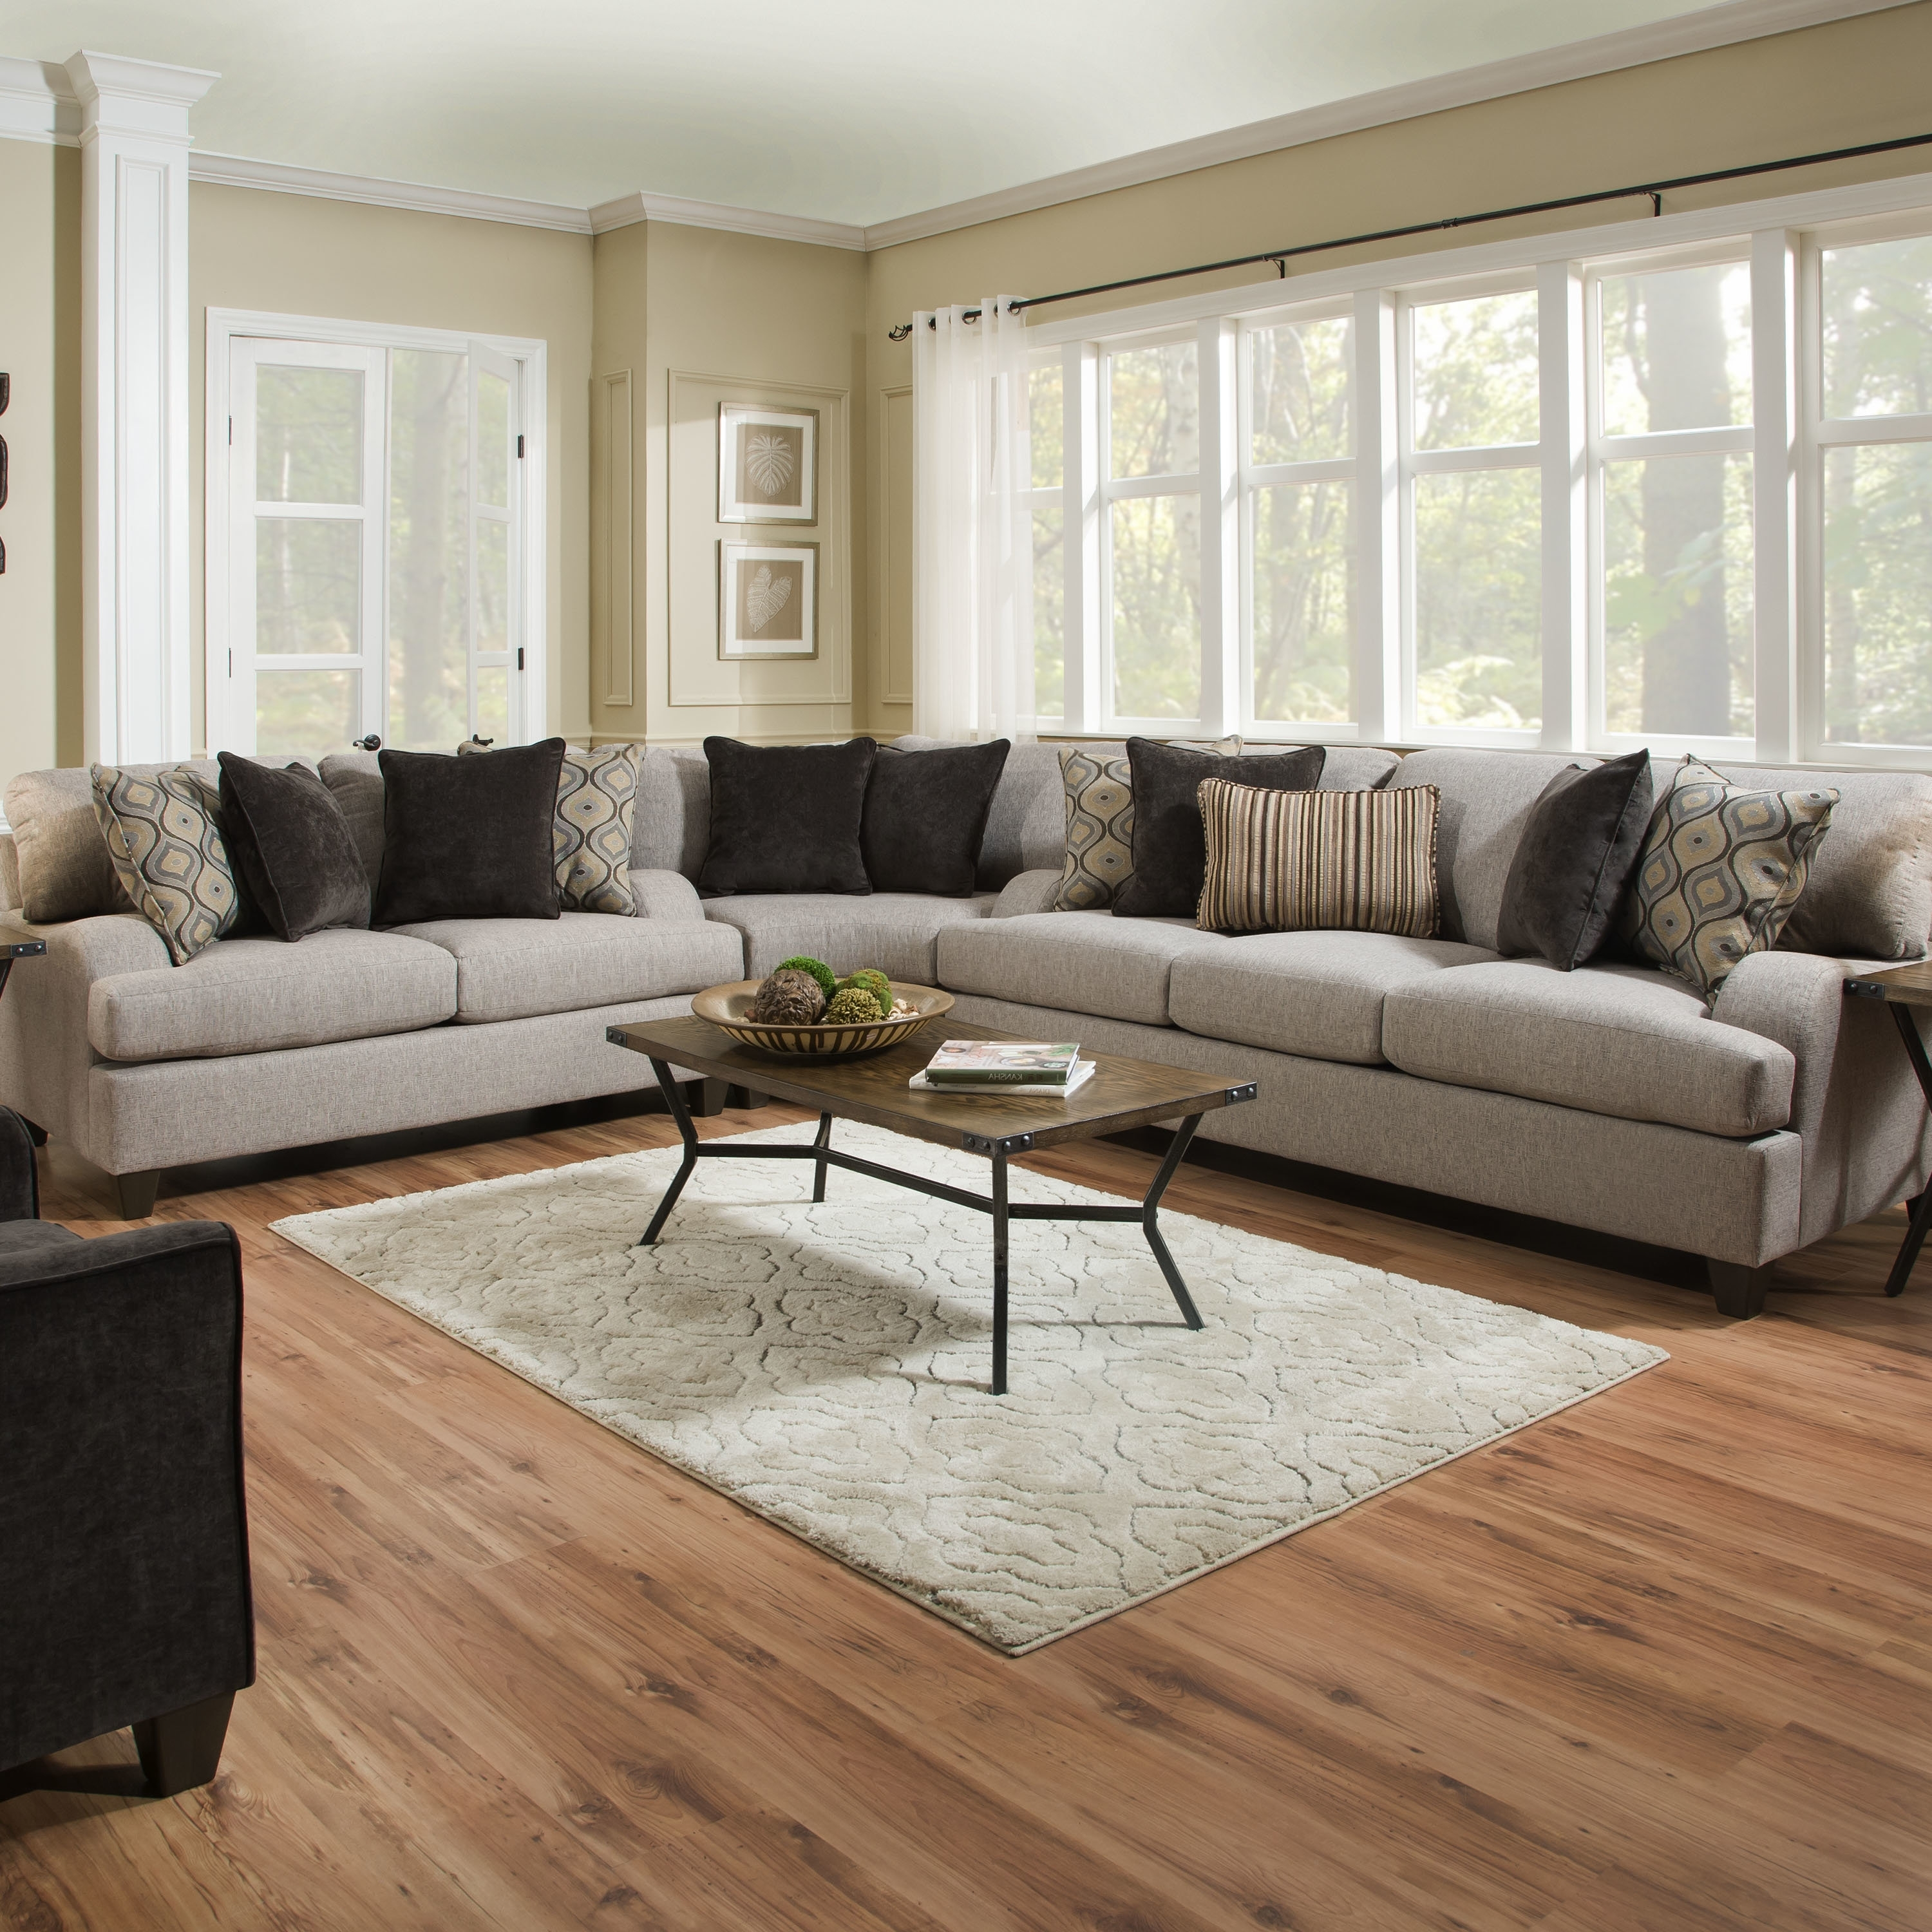 2017 Extra Large Sectional Sofas throughout Extra Large Sectional Sofas